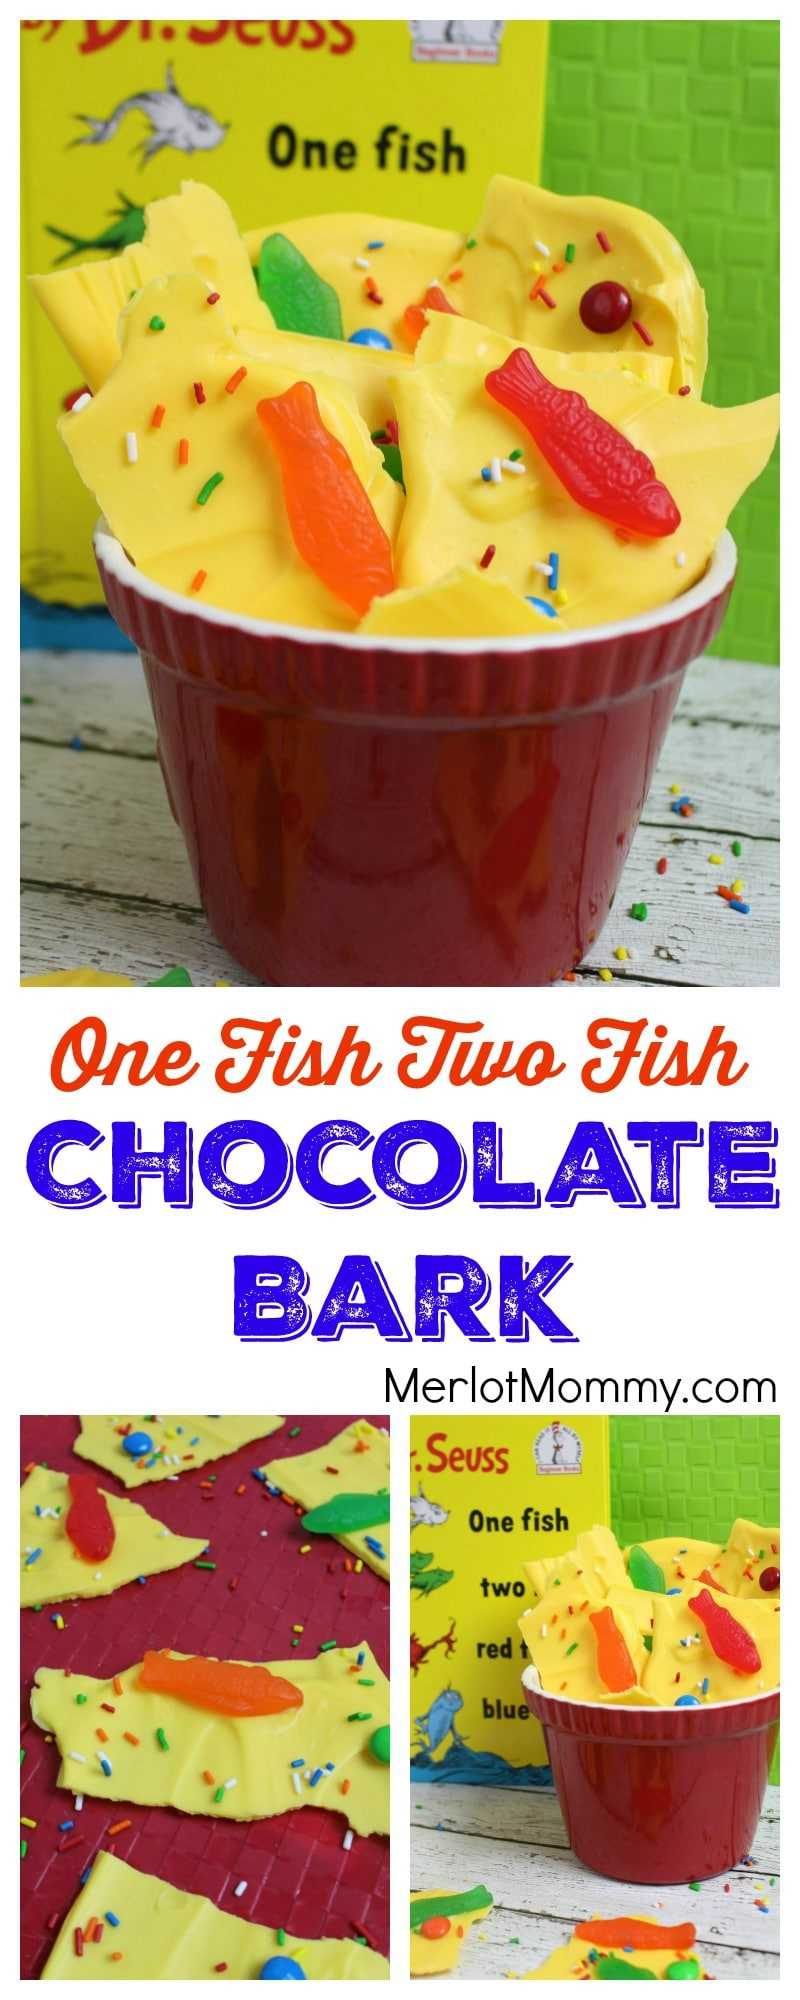 One Fish Two Fish Chocolate Bark Dr. Seuss-Inspired Recipe